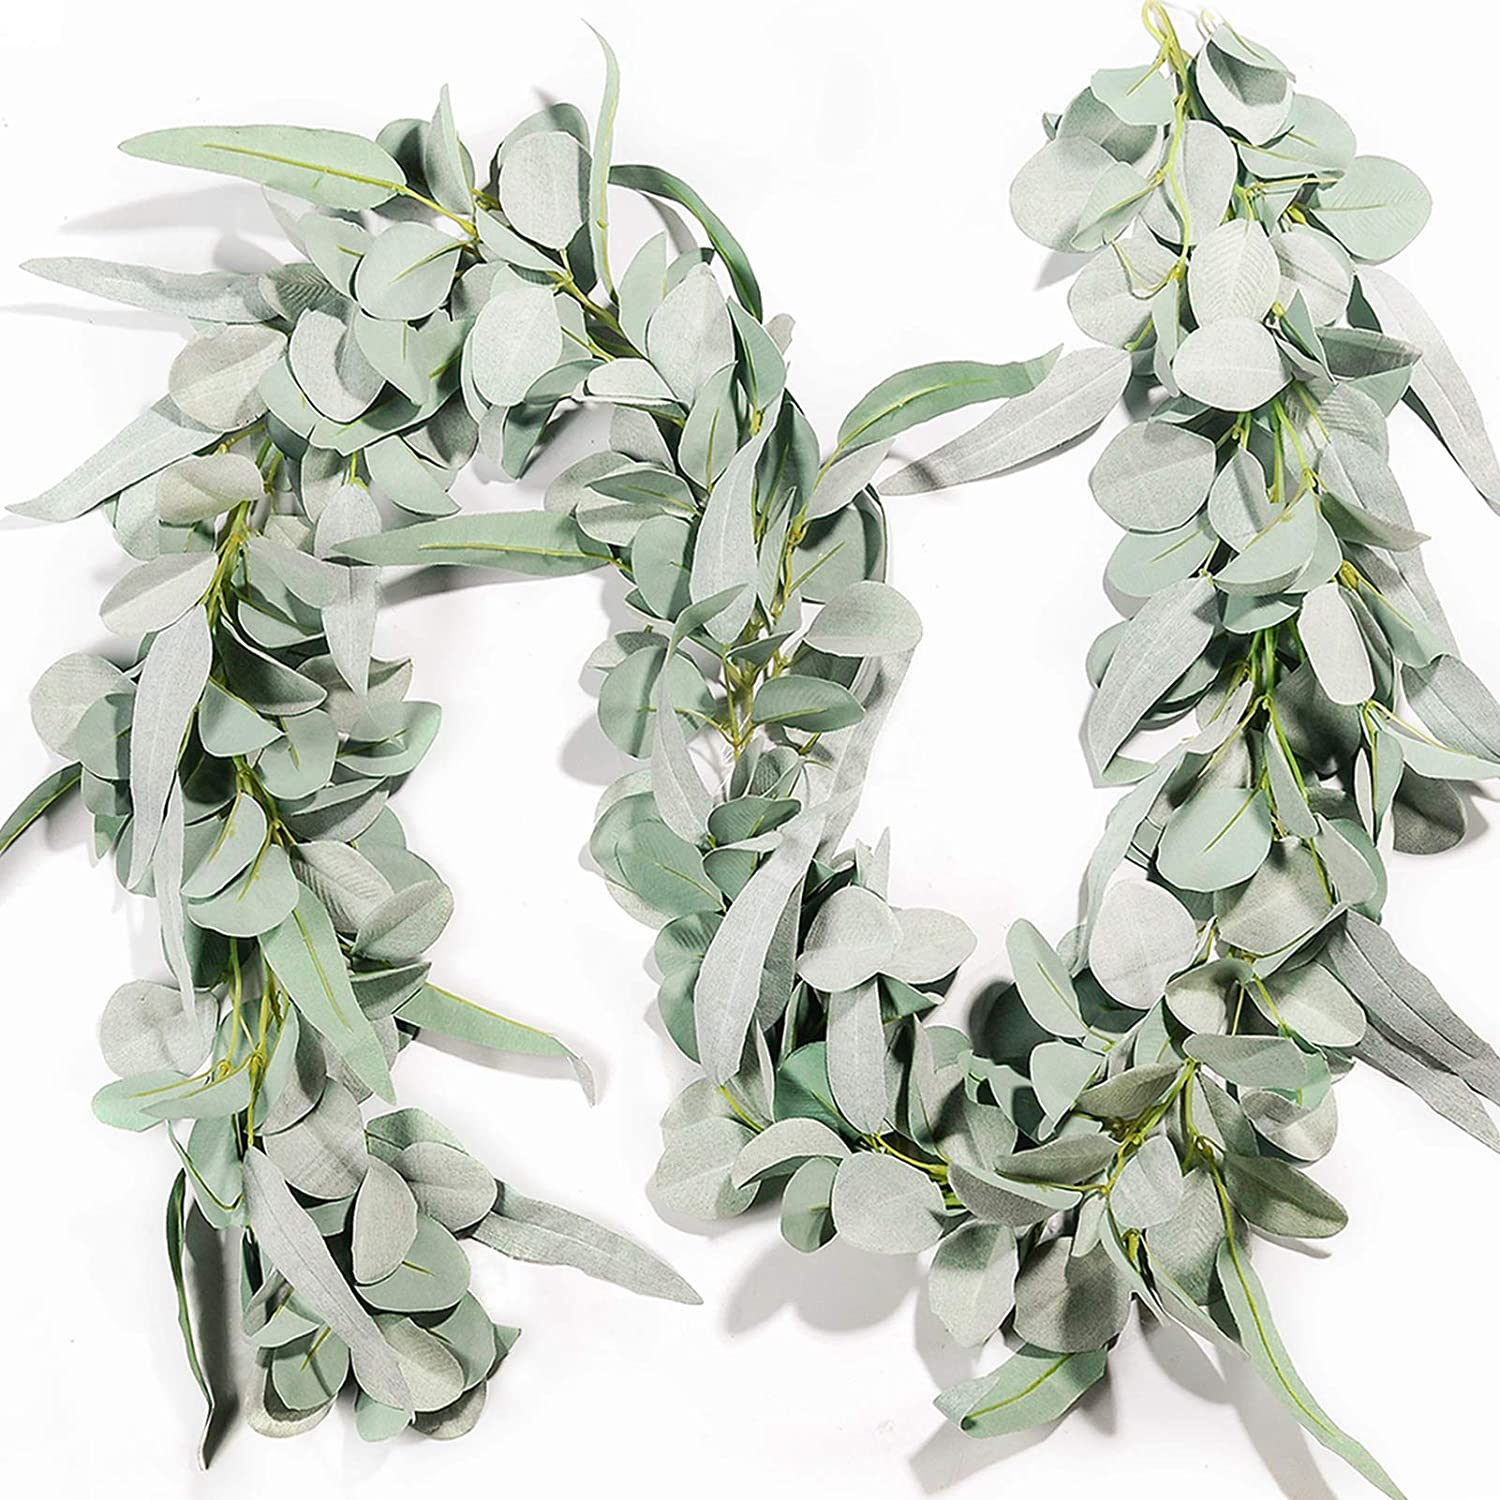 Miracliy Eucalyptus Garland, 6.2ft Artificial Lambs Ear Greenery Vine with Willow Leaves for Wedding Backdrop Table Runner Mantel Party Home Decor